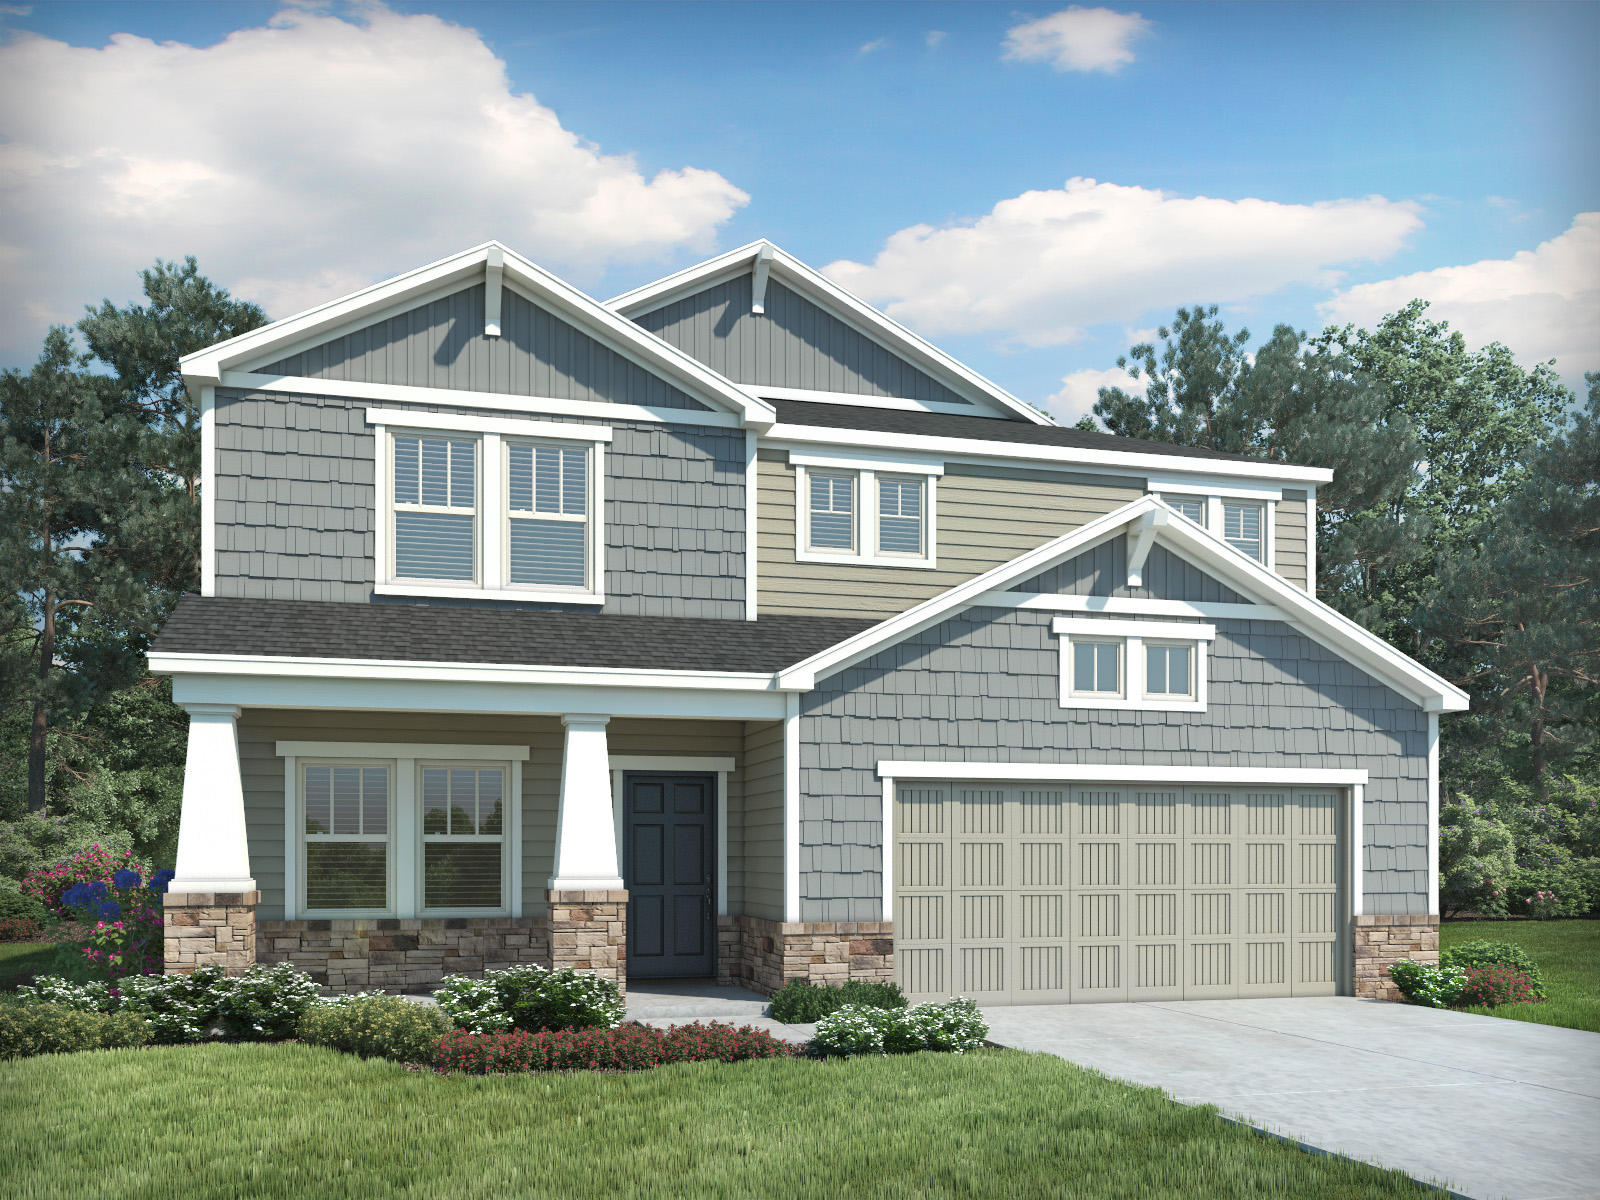 Astonishing Dalton Plan Marietta Ga 30008 4 Bed 2 5 Bath Single Family Home 3 Photos Trulia Home Interior And Landscaping Elinuenasavecom